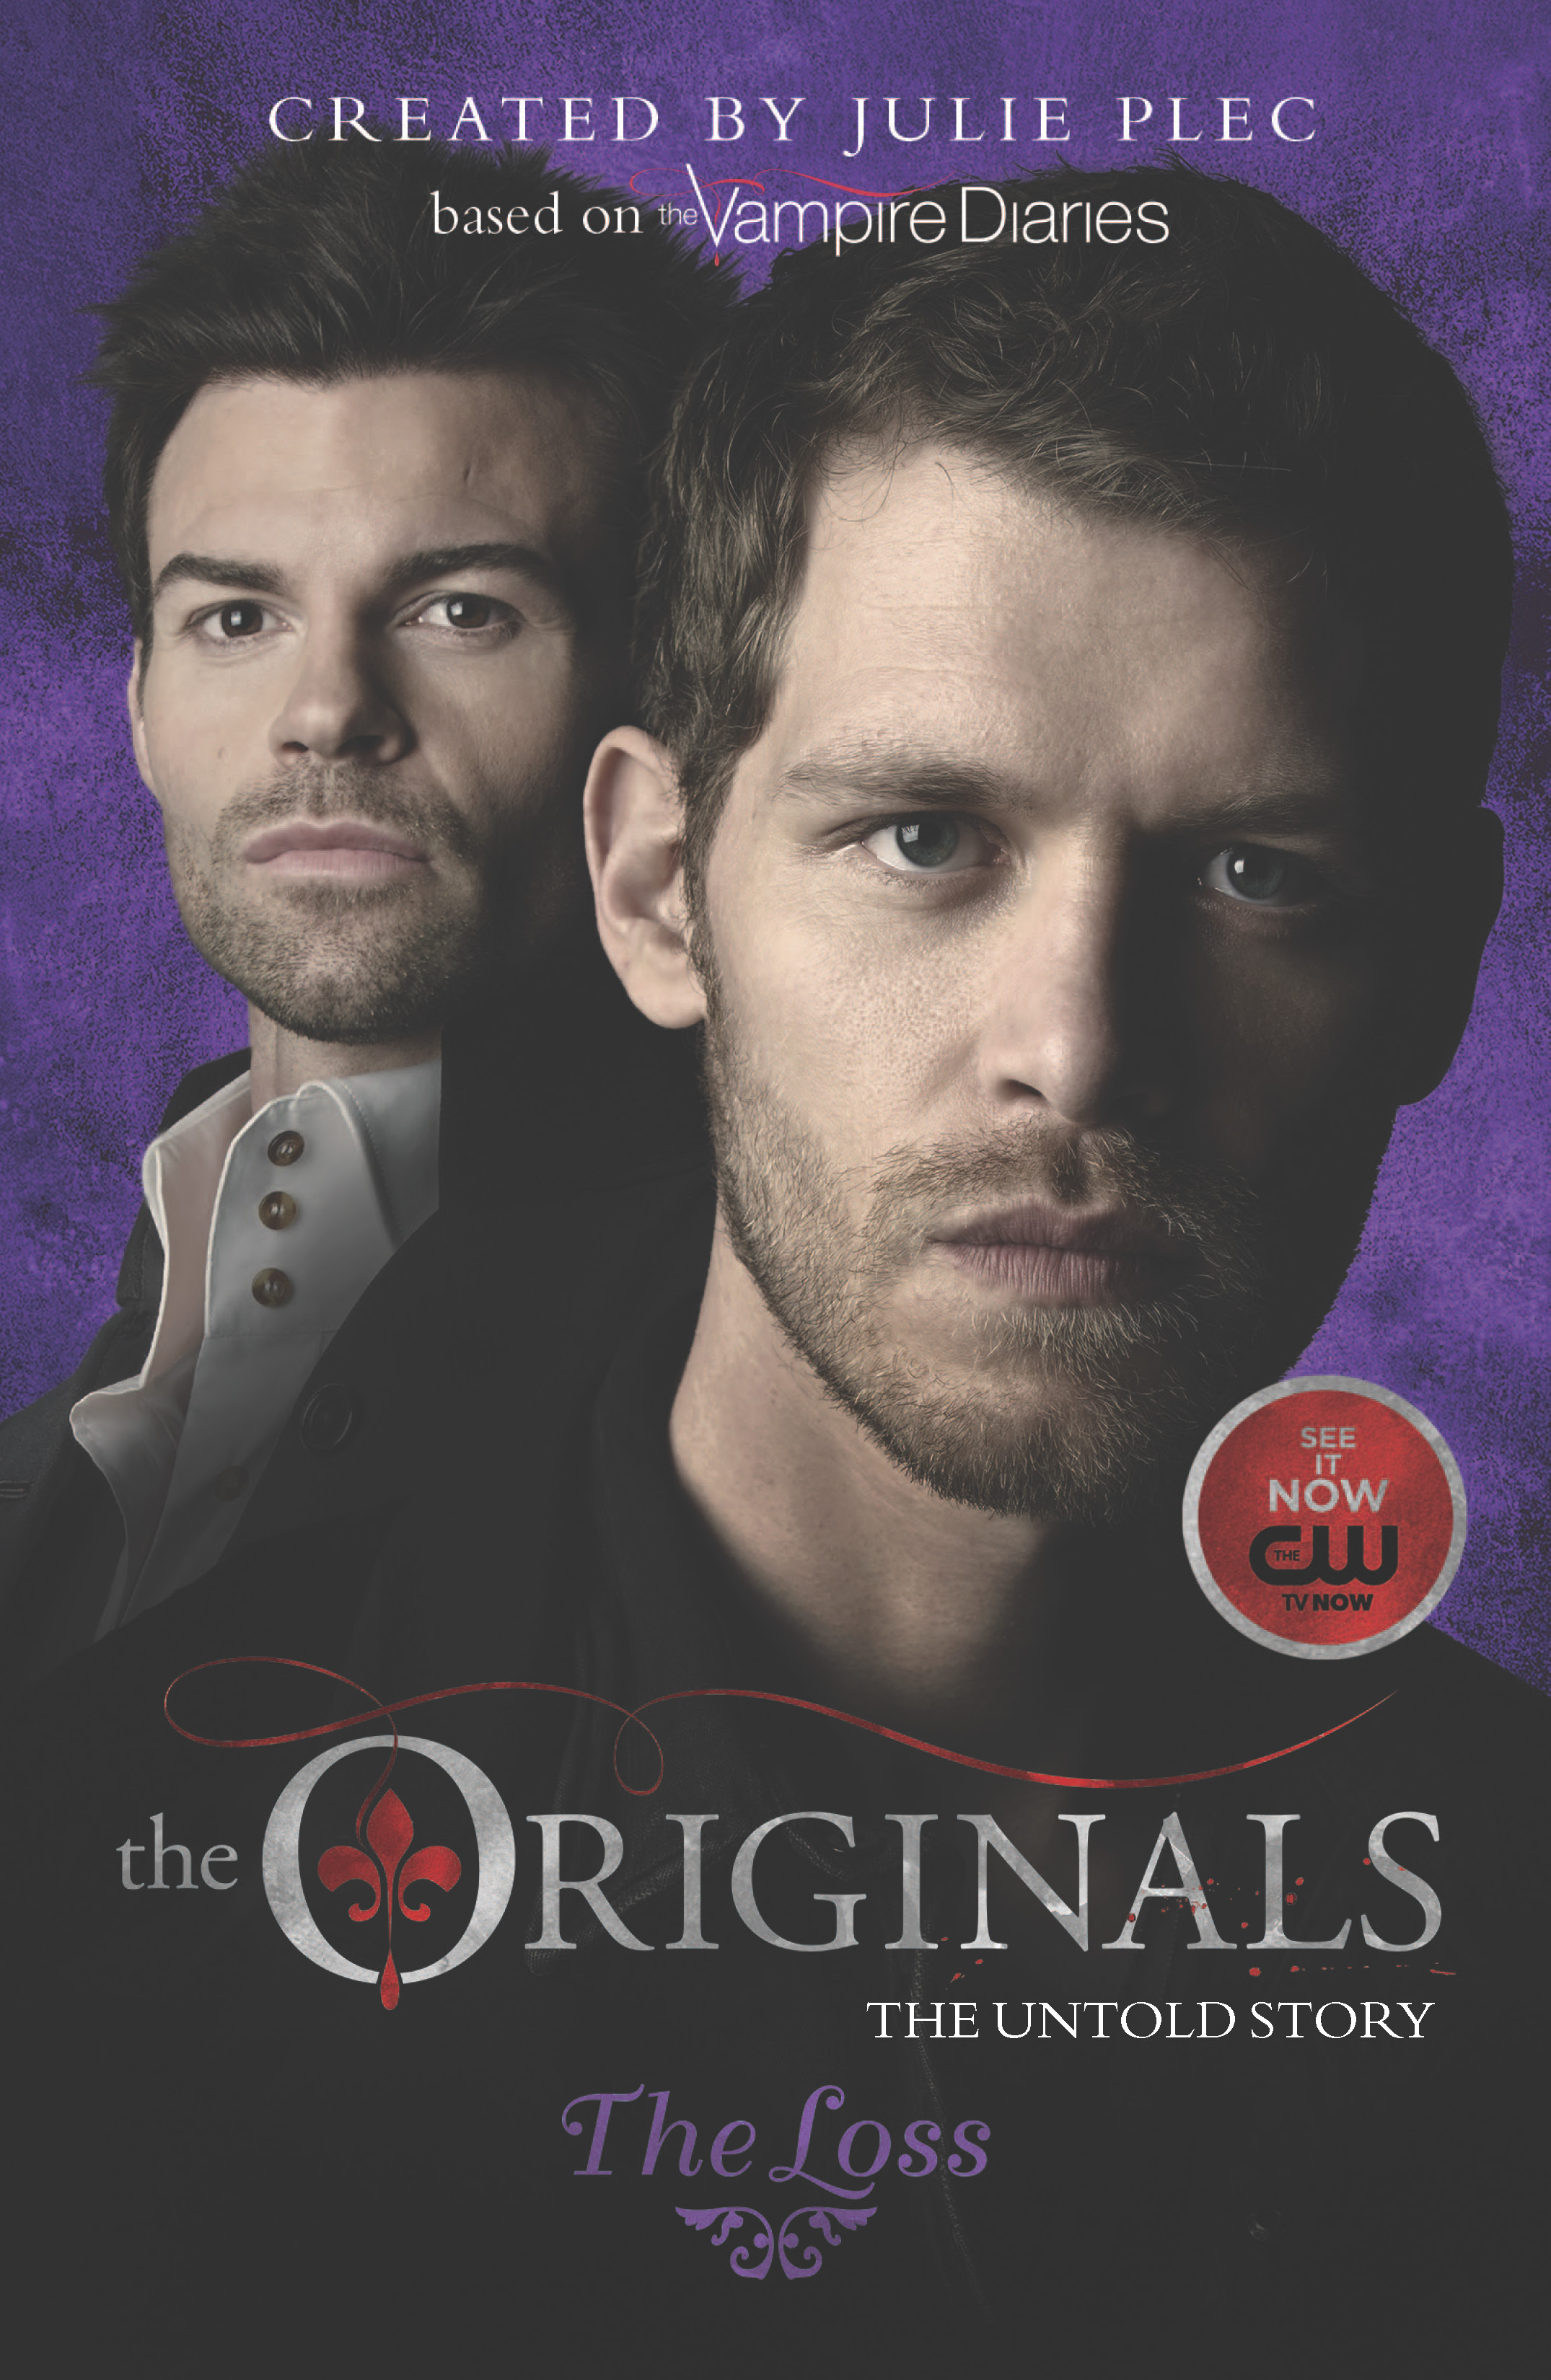 The Originals The Loss by Julie Plec